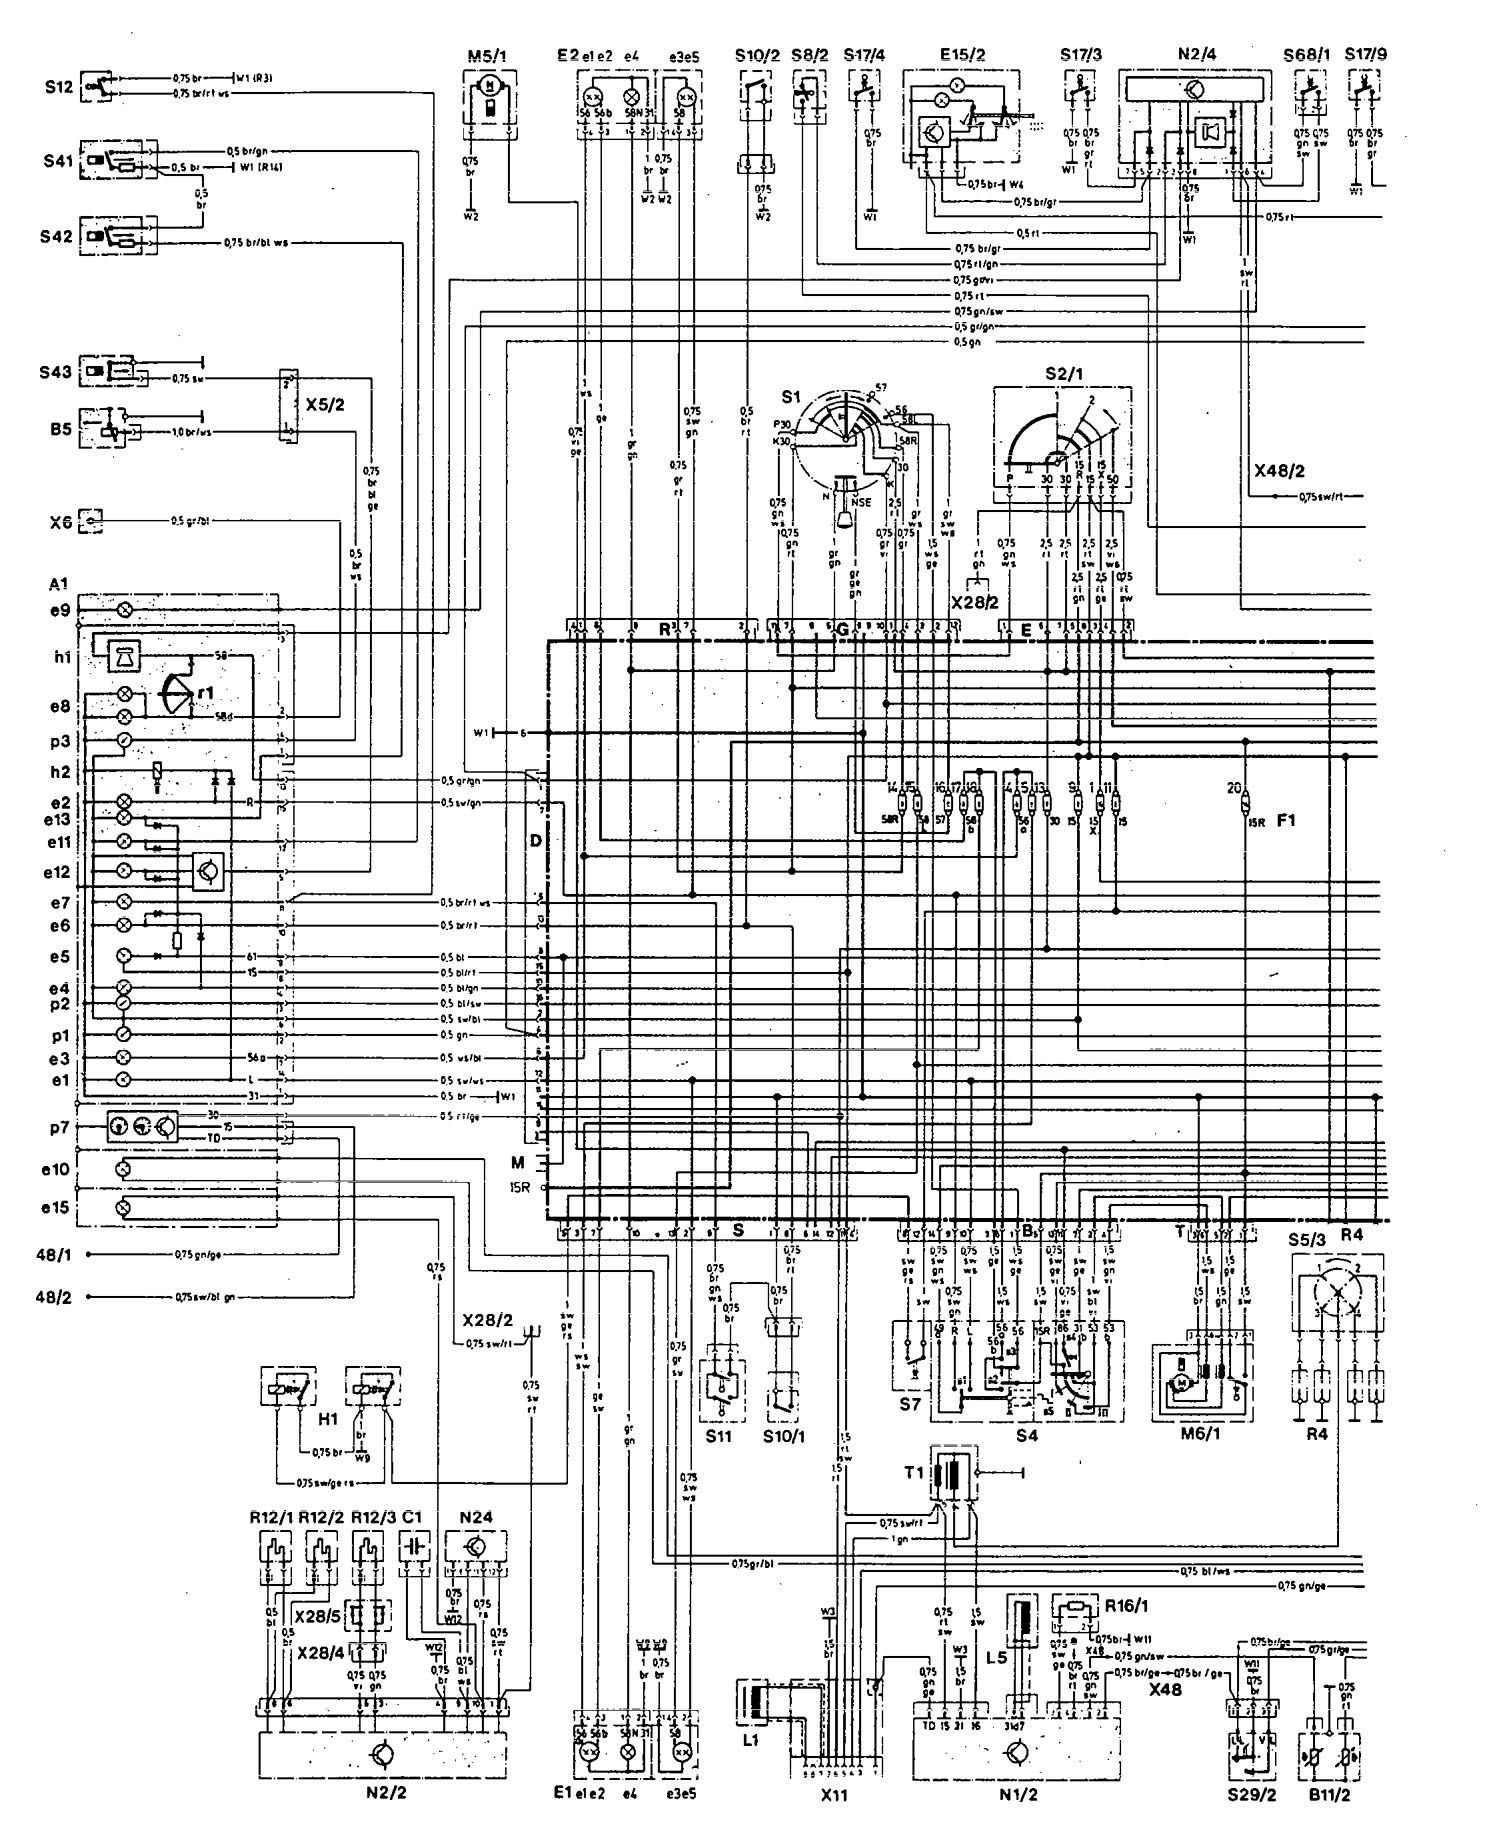 Mercedes Benz 190e  1992  - Wiring Diagrams